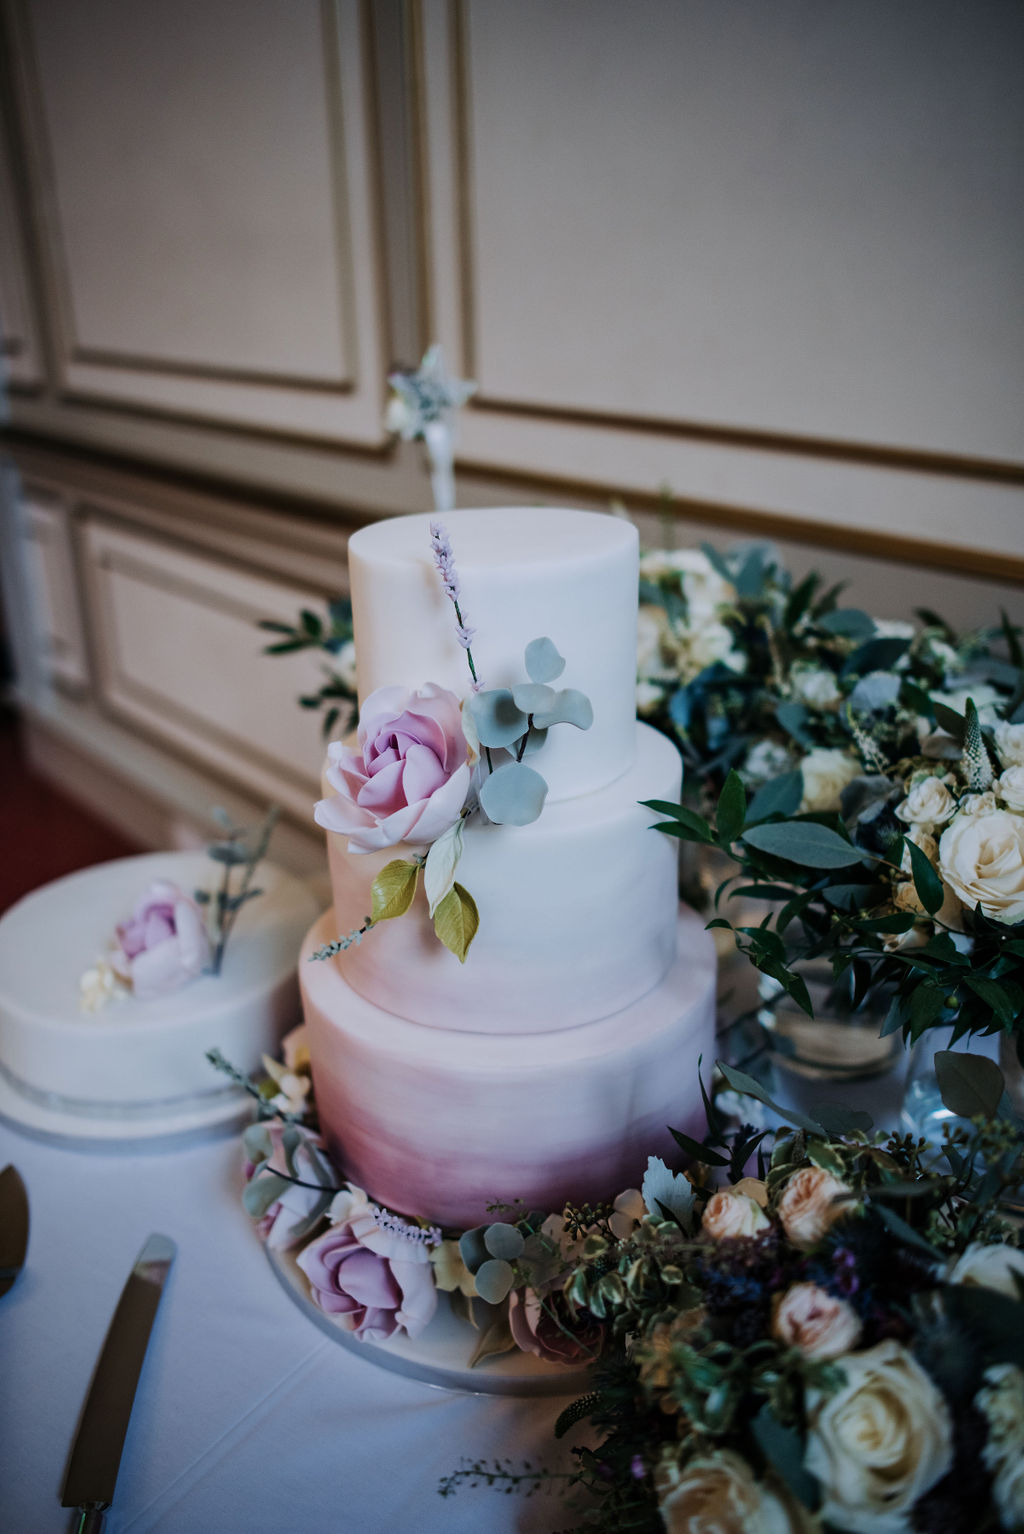 Juniper Cakery Wedding Cake - Rise Hall Wedding, East Yorkshire